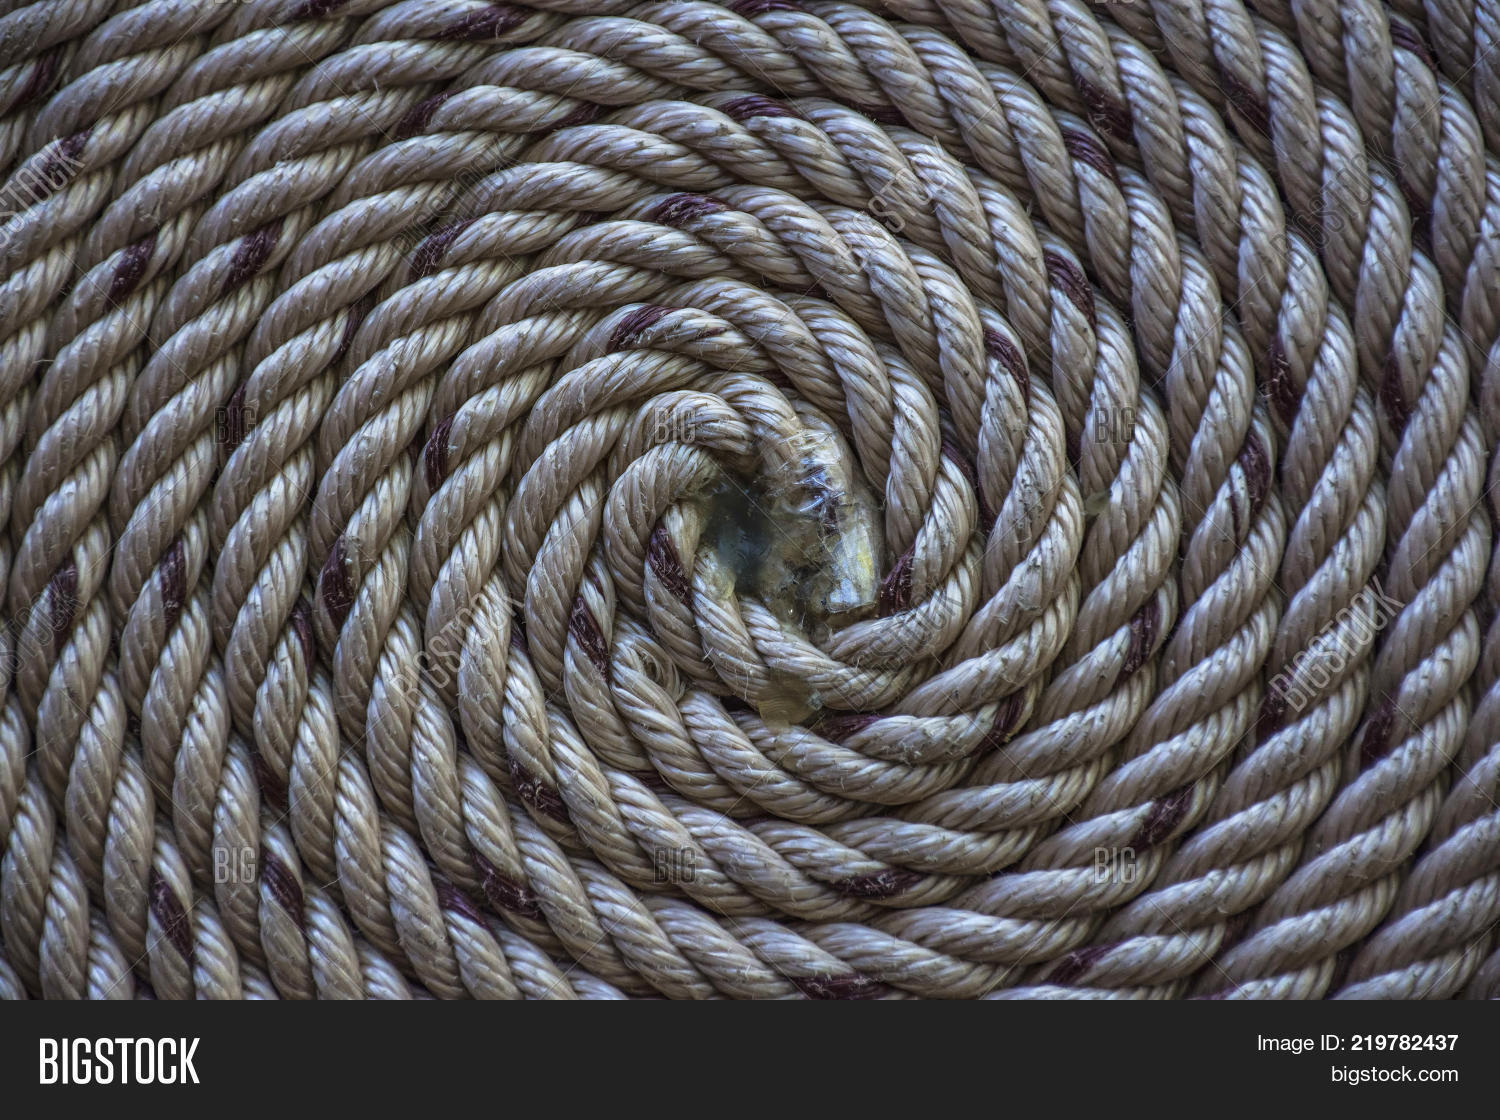 Circle Roll Texture Image & Photo (Free Trial) | Bigstock